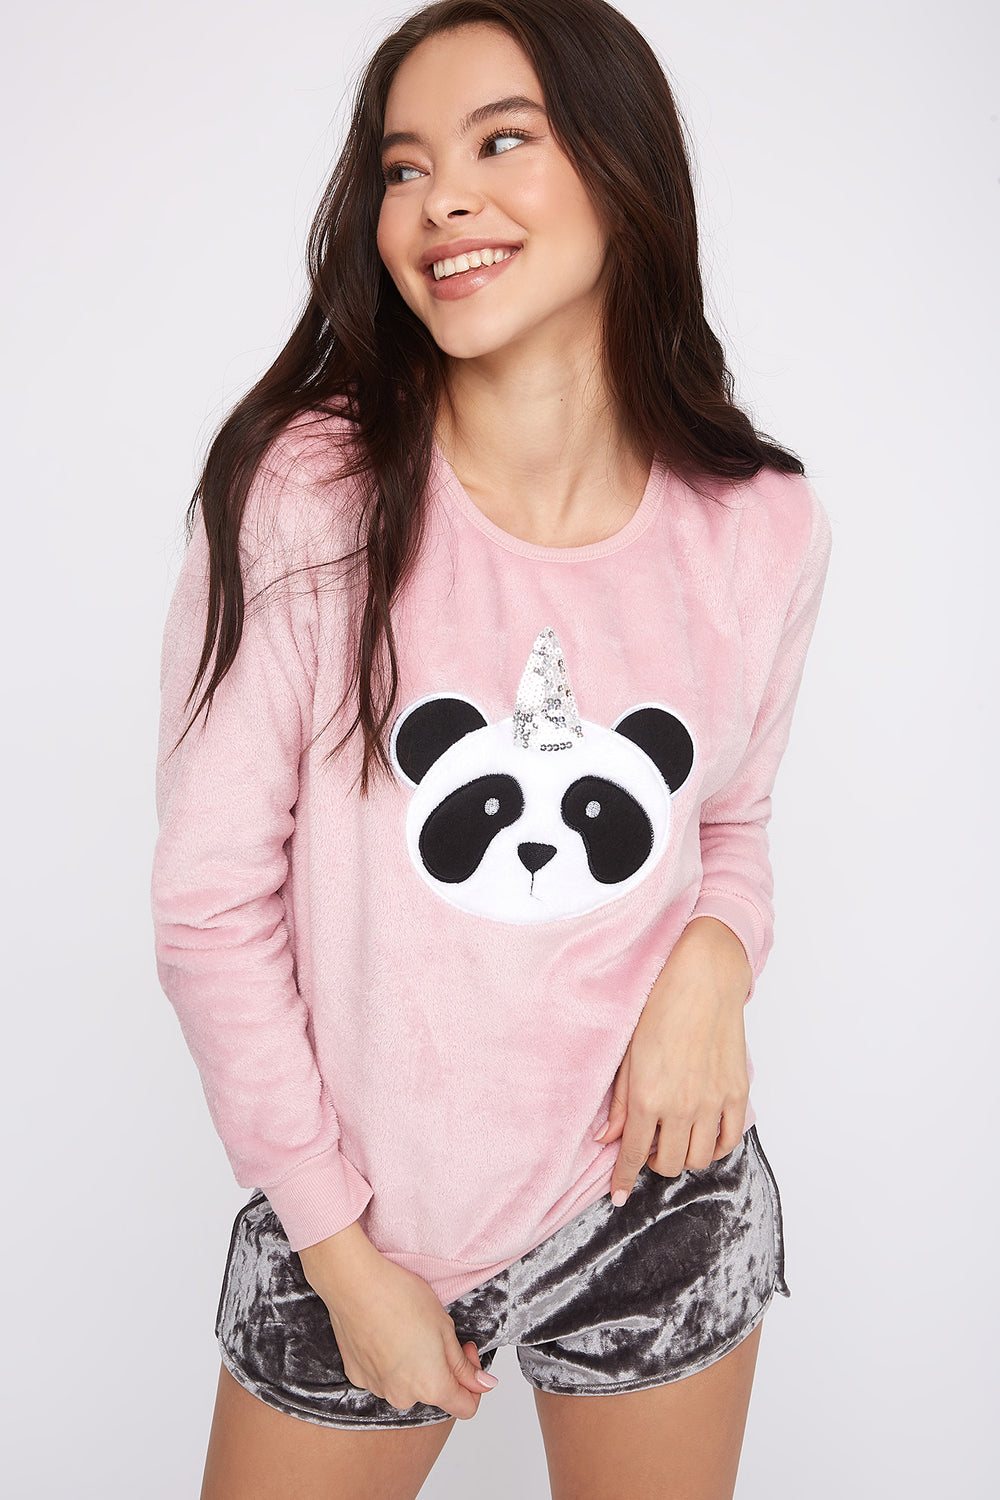 Faux-Fur Sequin Panda Pajama Sweater Pink